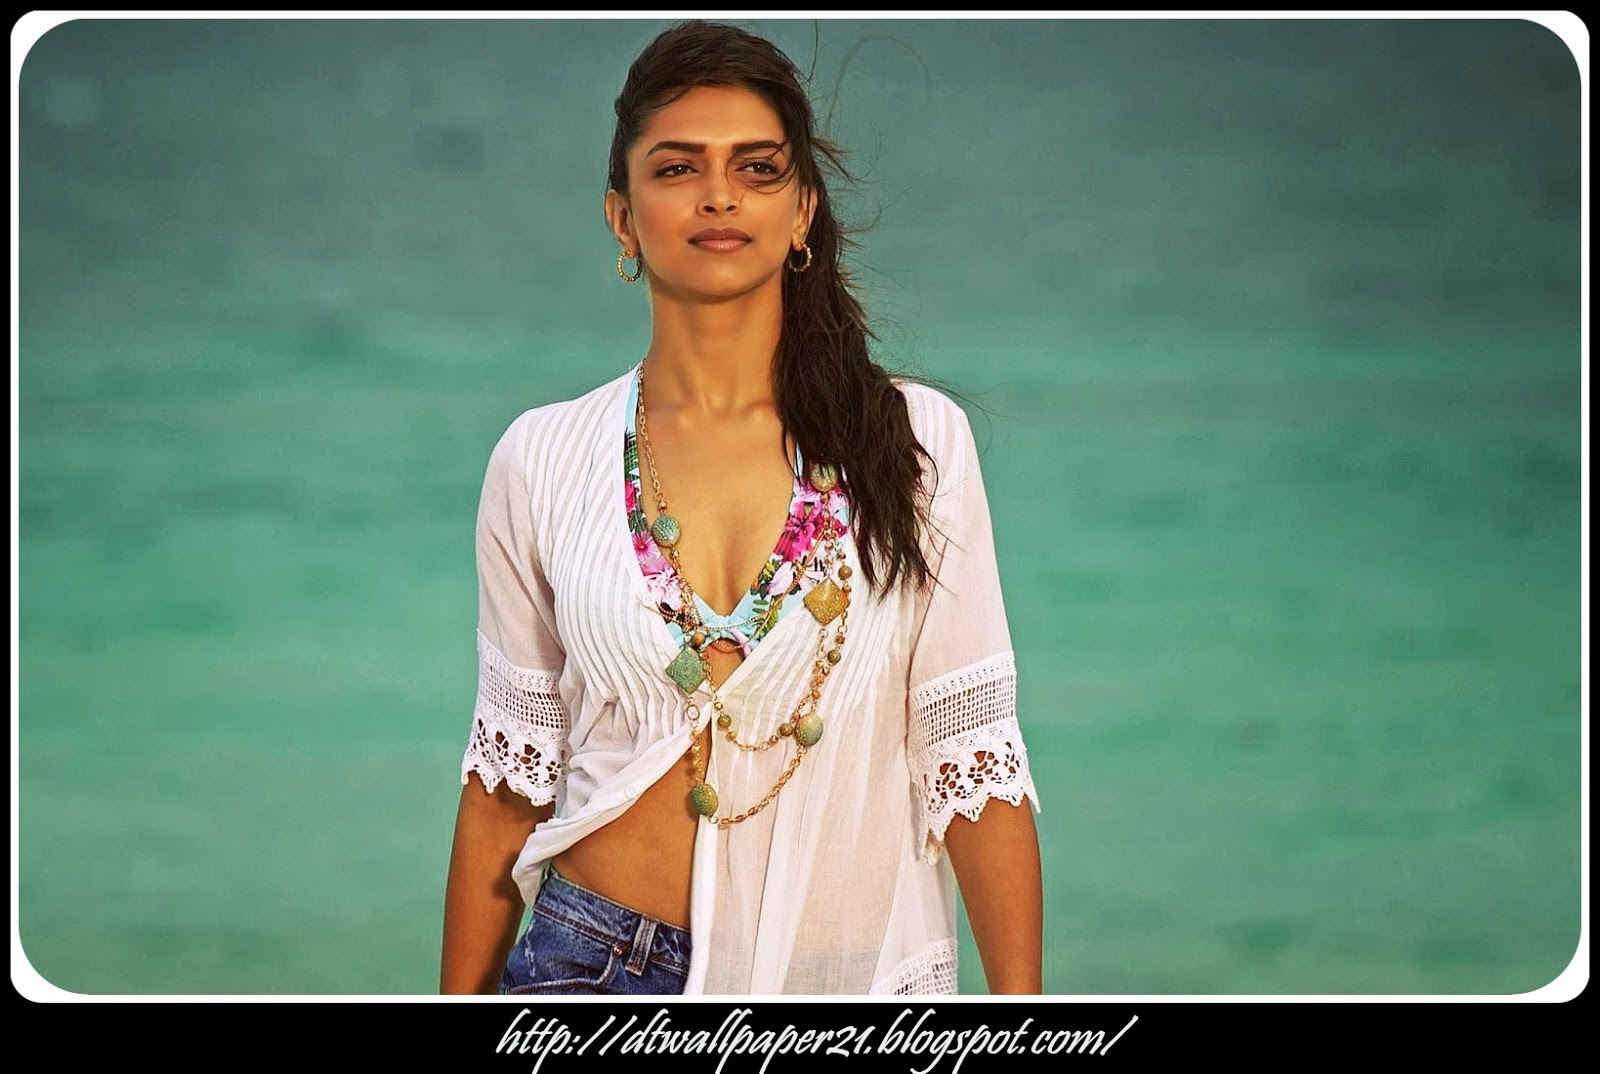 deepika padukone, celebrity, deepika wallpaper, deepika padukone photos, deepika padukone free download,bollywood hindi actress deepika